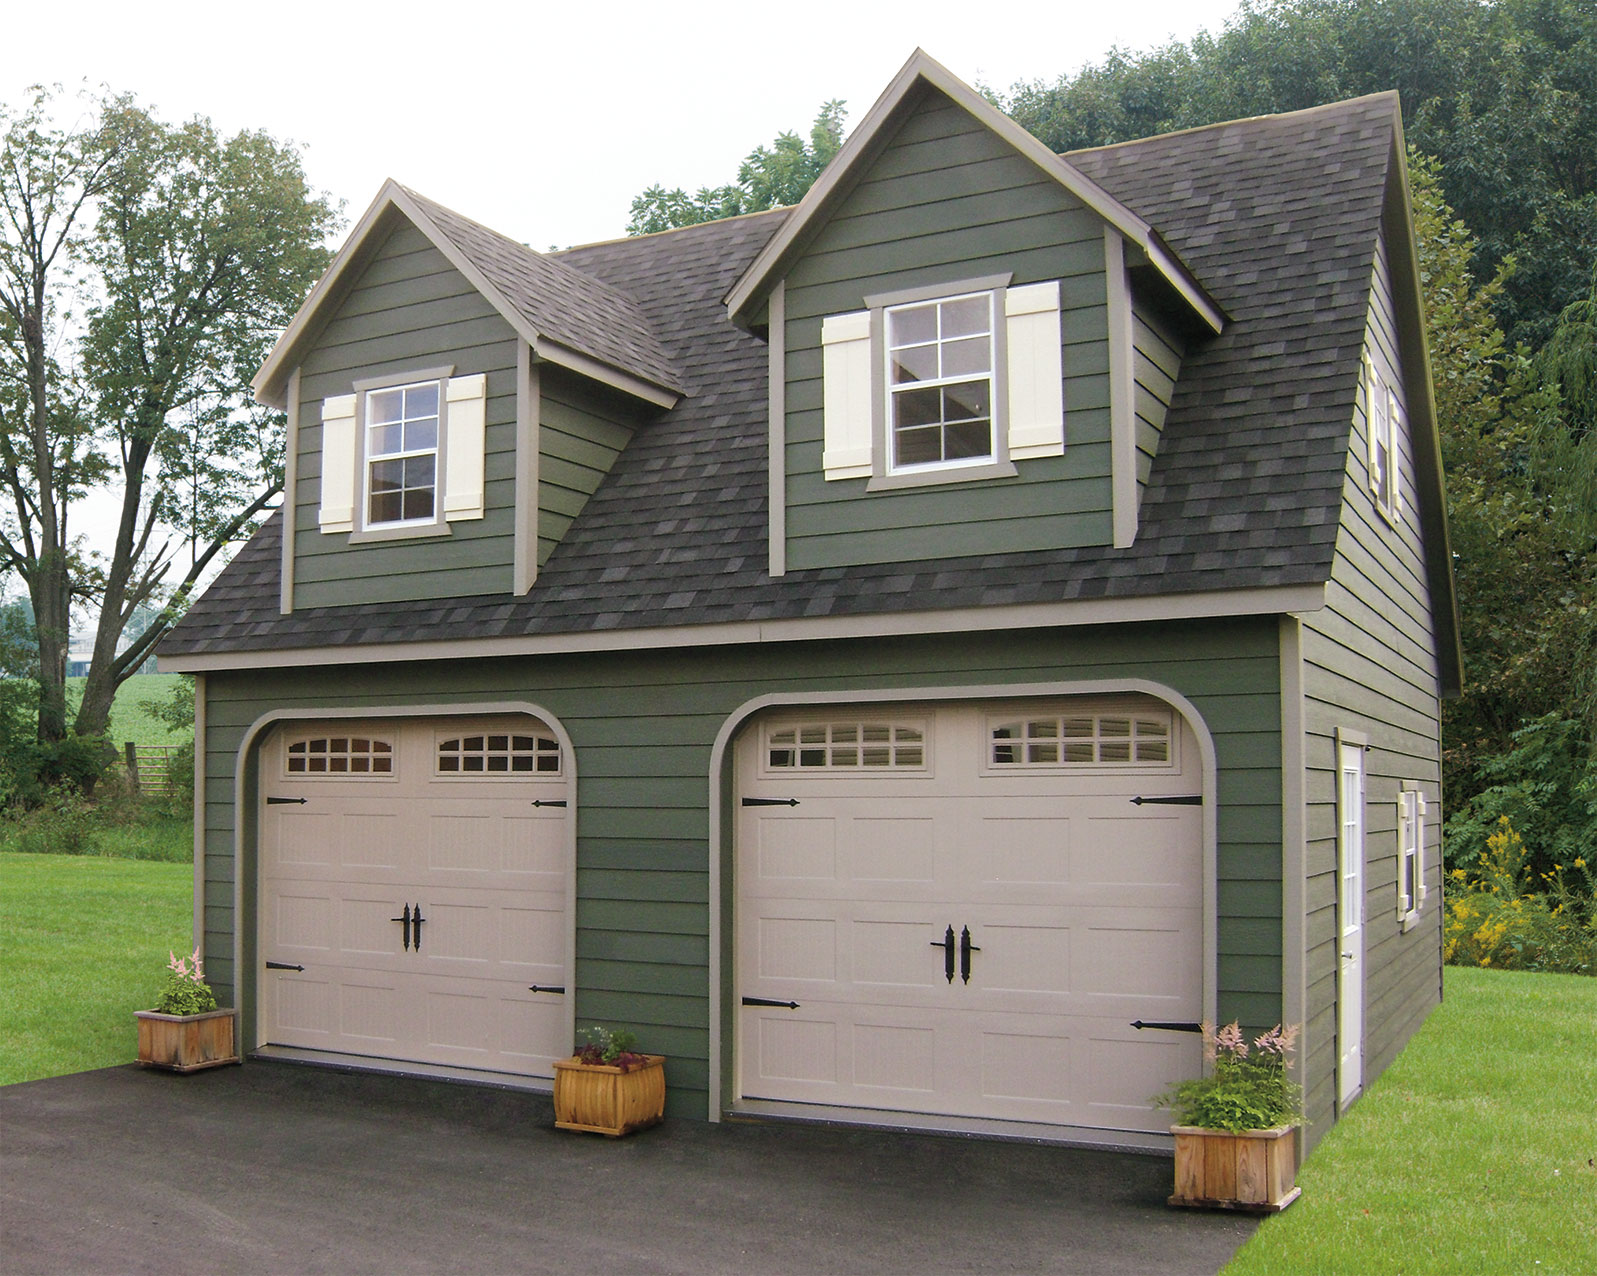 Built on site custom amish garages in oneonta ny amish for 2 story kit homes